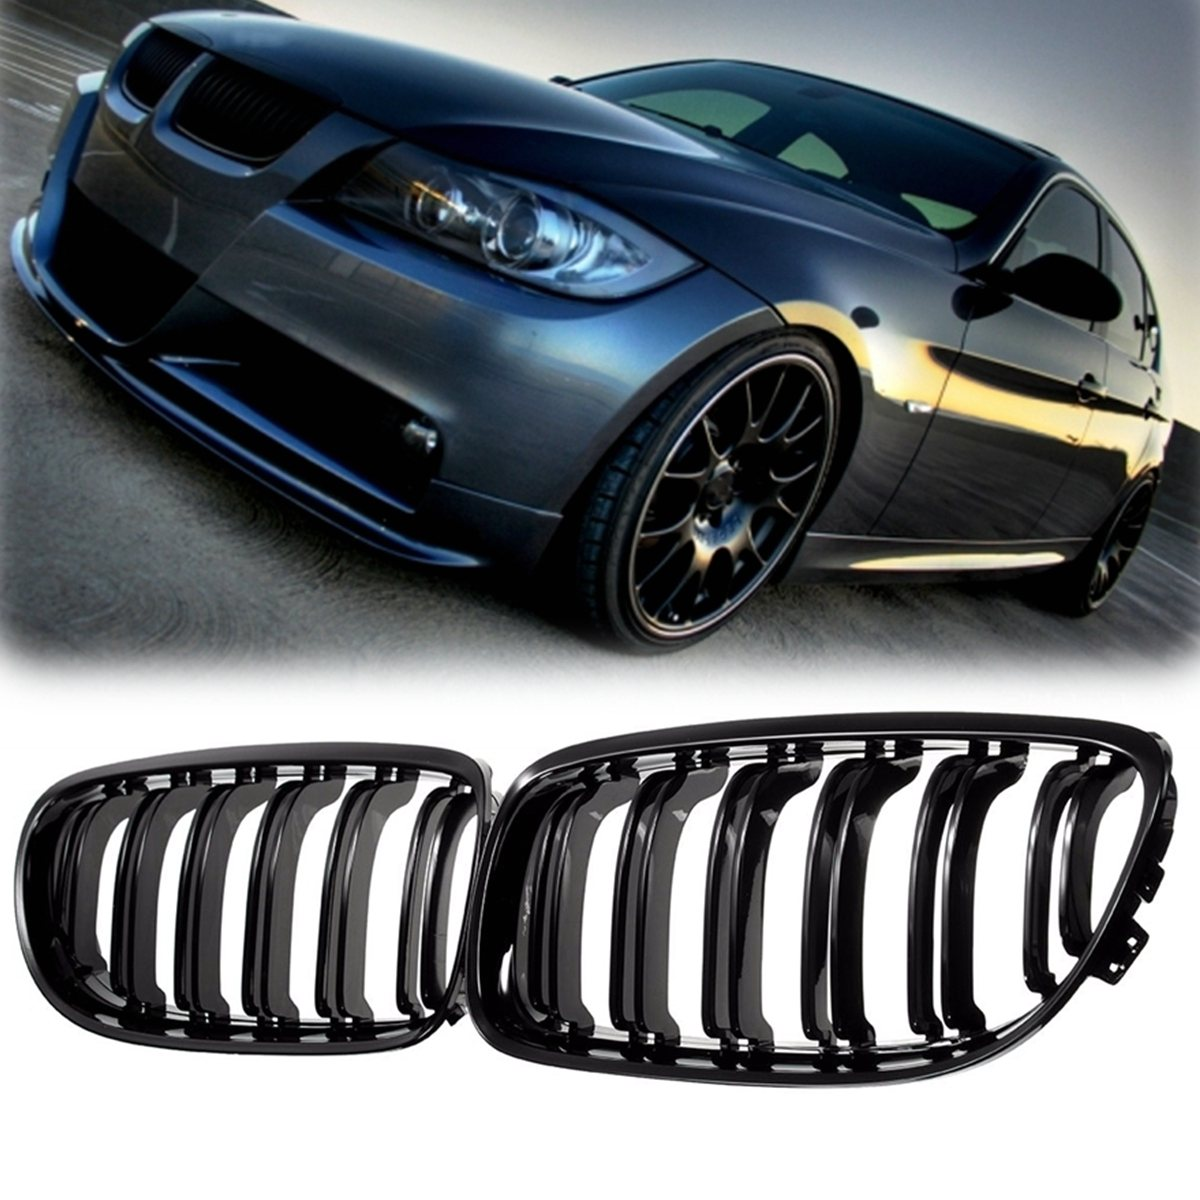 Pair Matte/Gloss Black Car Front Grille For BMW E90 LCI 3-Series Sedan/Wagon 09-11 Racing Grills